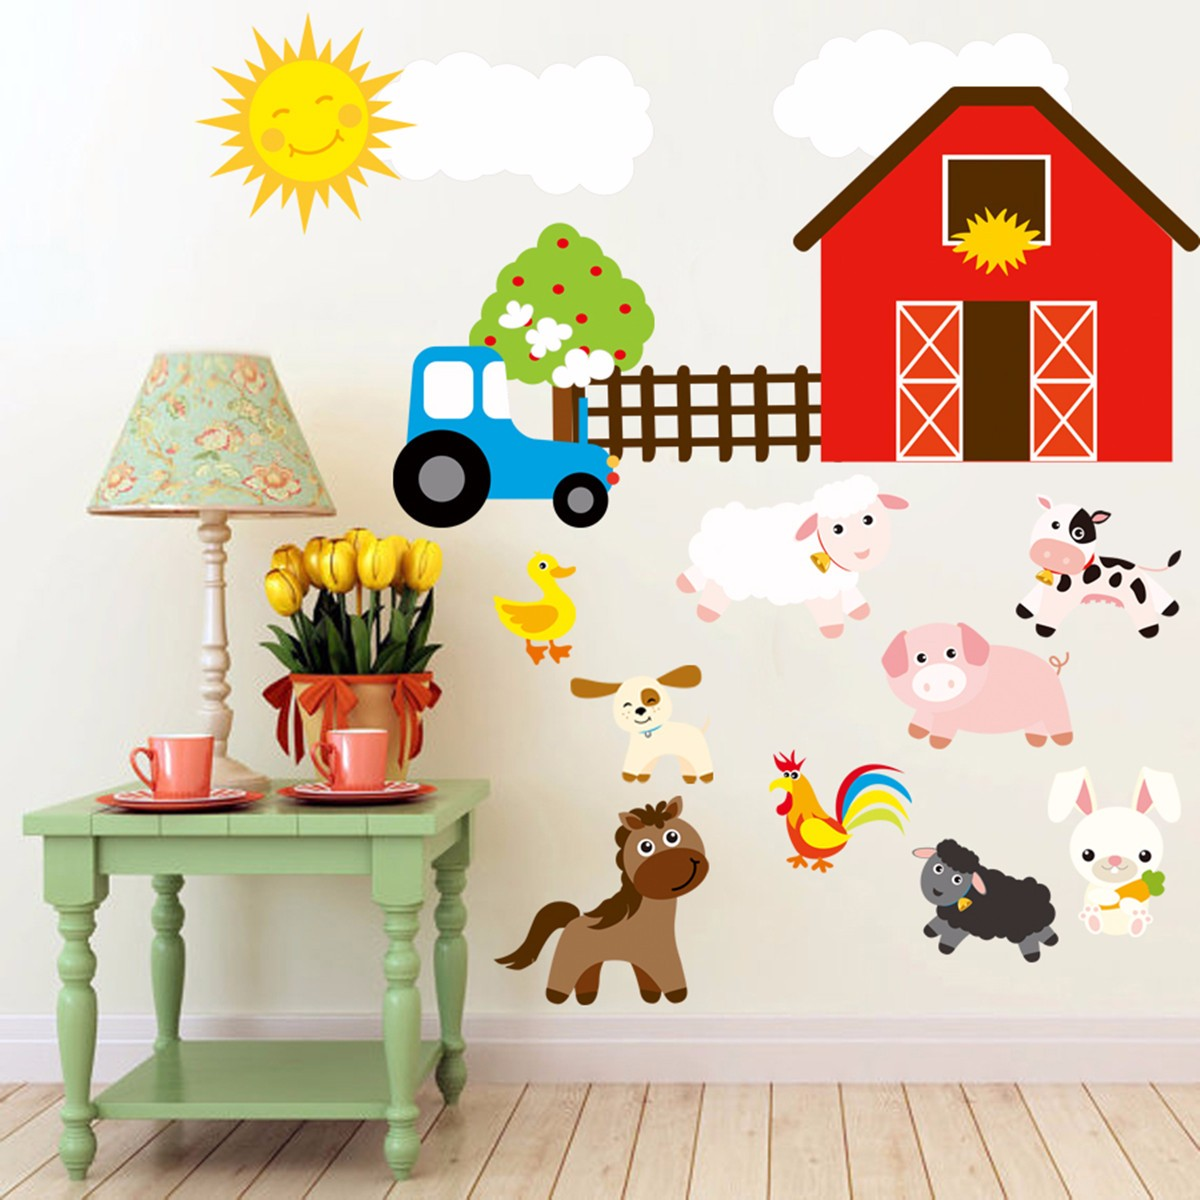 buy cartoon diy farm animals wall stickers home decoration decor for kids room. Black Bedroom Furniture Sets. Home Design Ideas